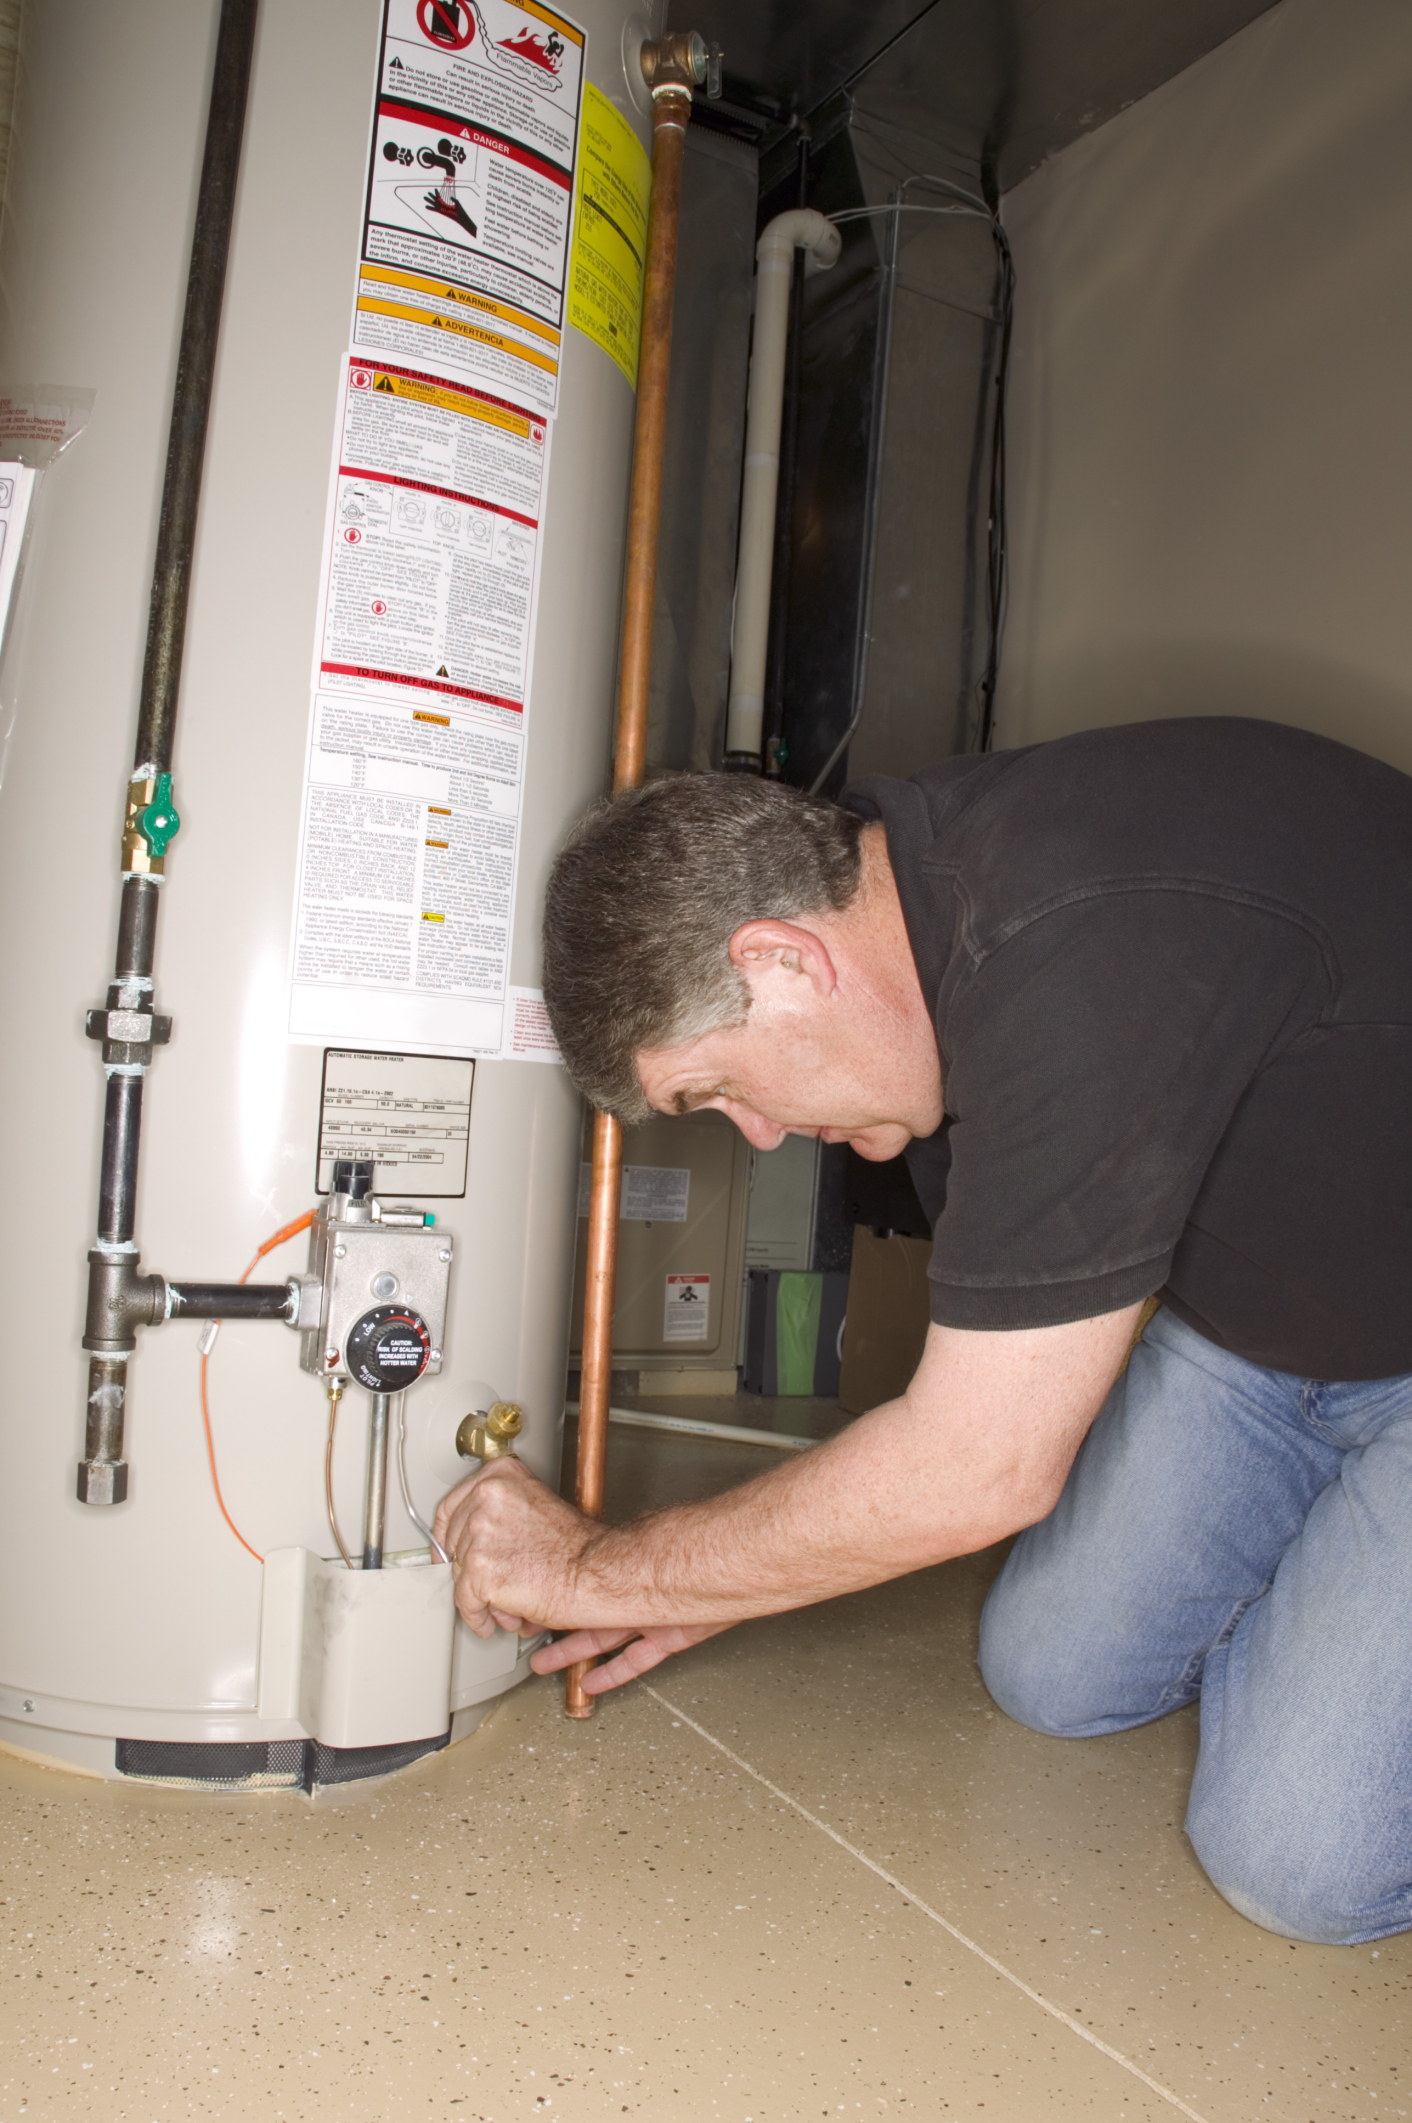 How To Light The Pilot For A Gas Hot Water Heater Home